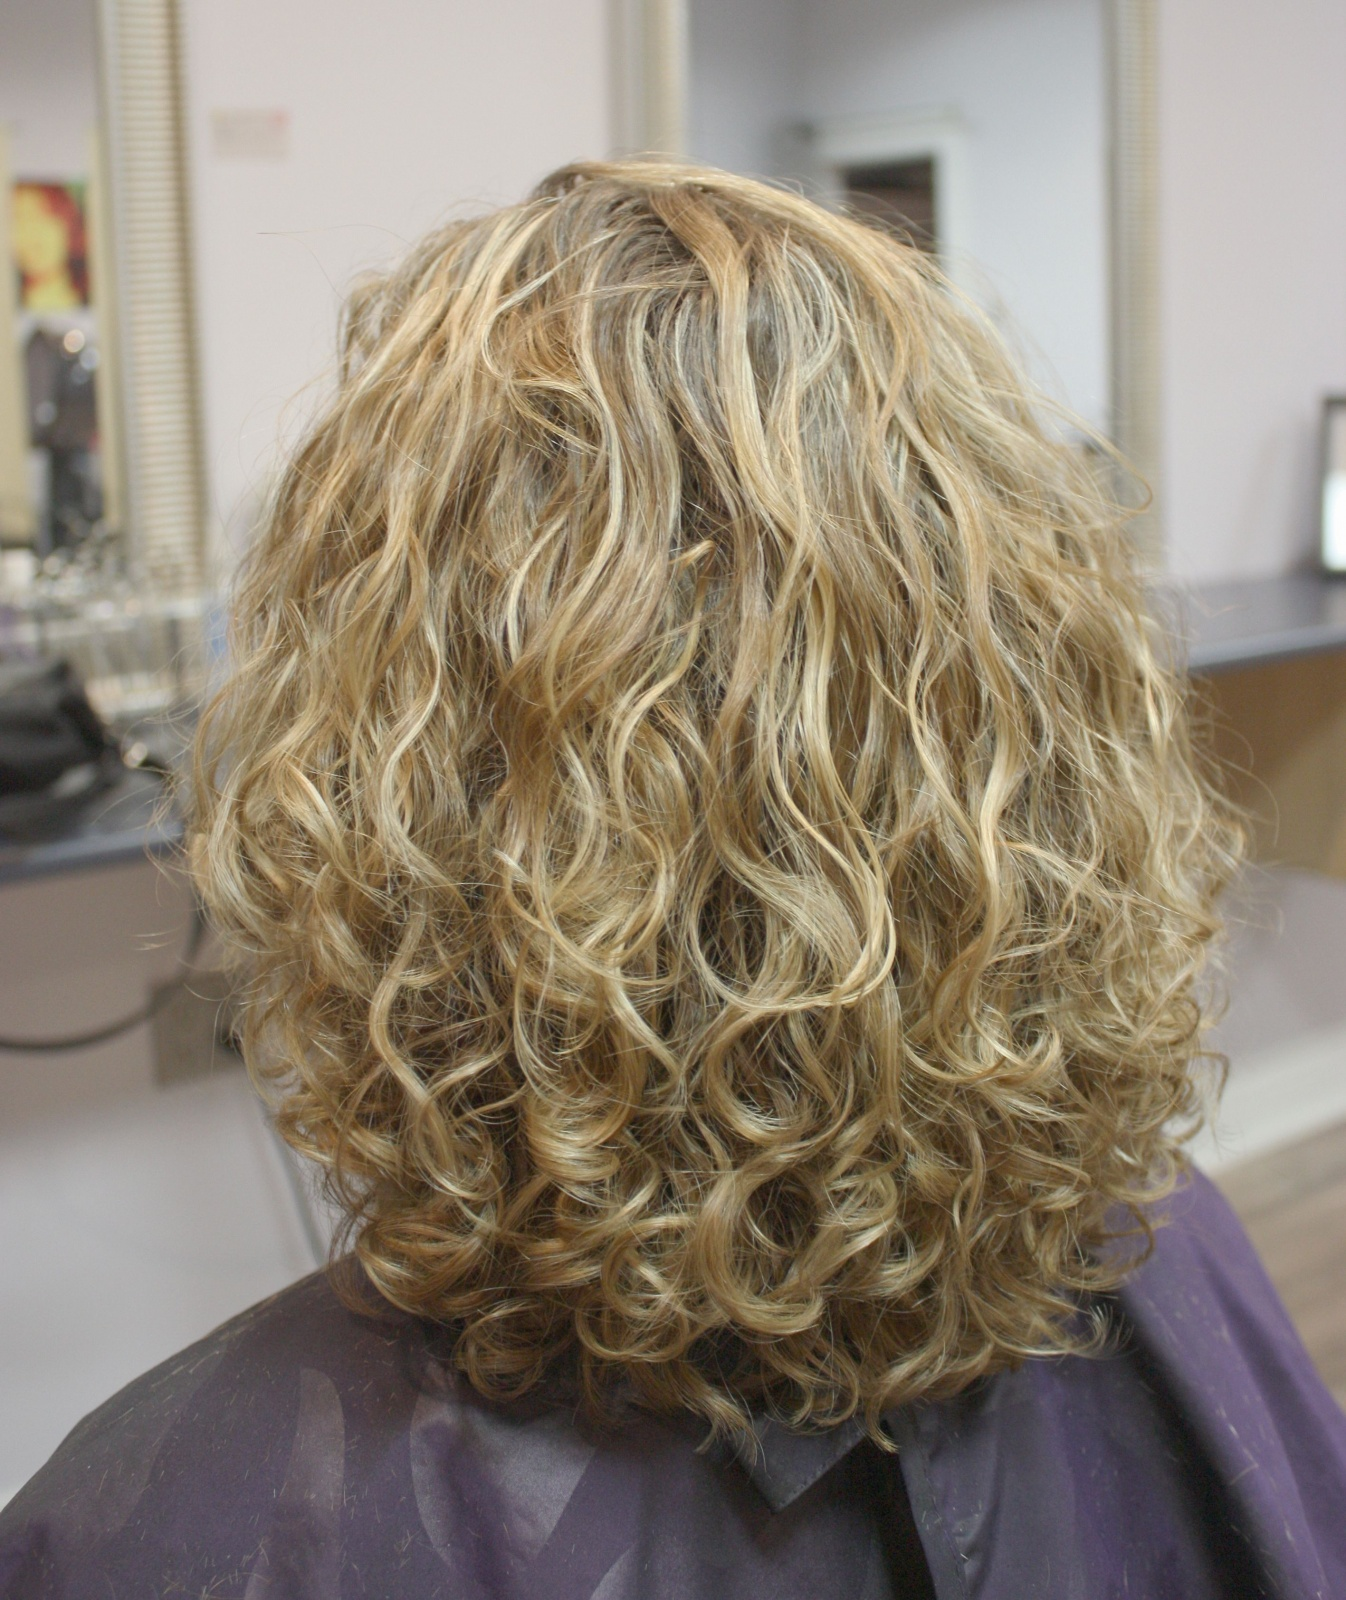 After image of colored and styled curly hair